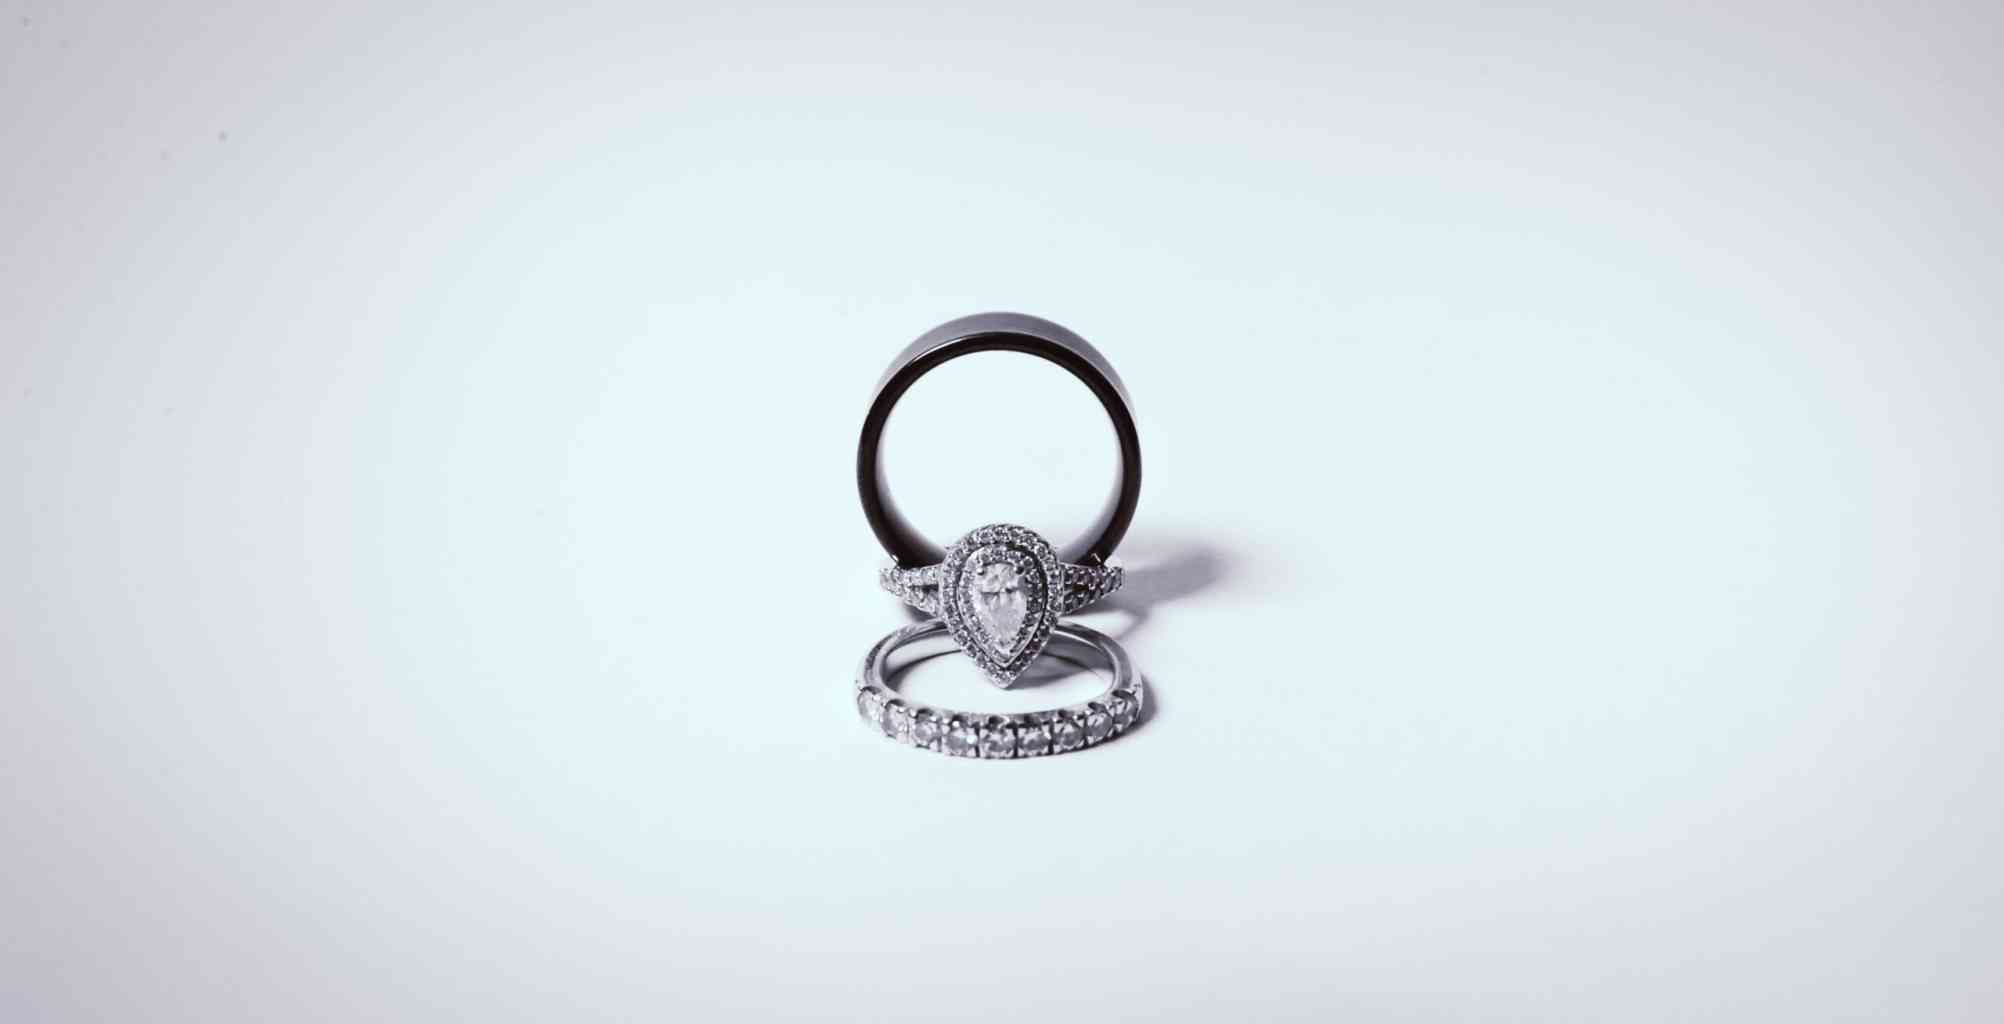 10 Affordable Engagement Rings Under $200